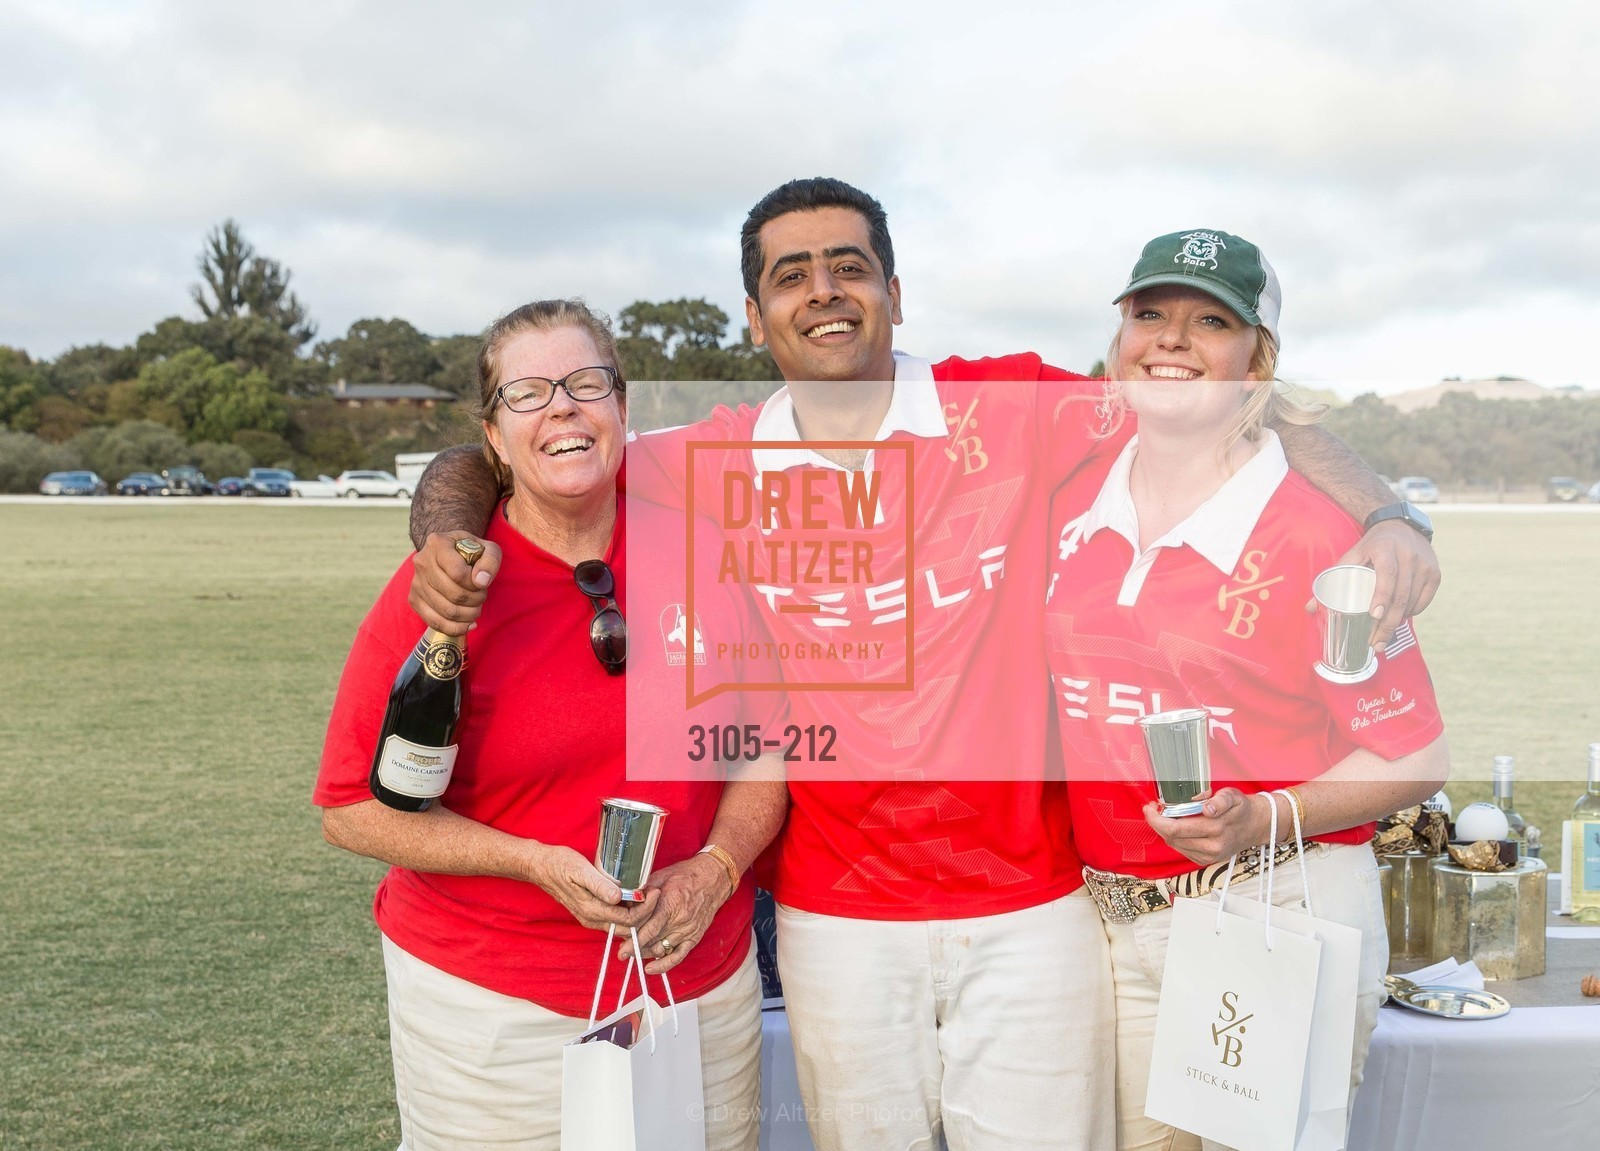 Bonnie Magill, Hassan Khan, Raeann Magill, Stick & Ball Oyster Cup Polo Tournament, Cerro Pampa Polo Club, July 25th, 2015,Drew Altizer, Drew Altizer Photography, full-service event agency, private events, San Francisco photographer, photographer California